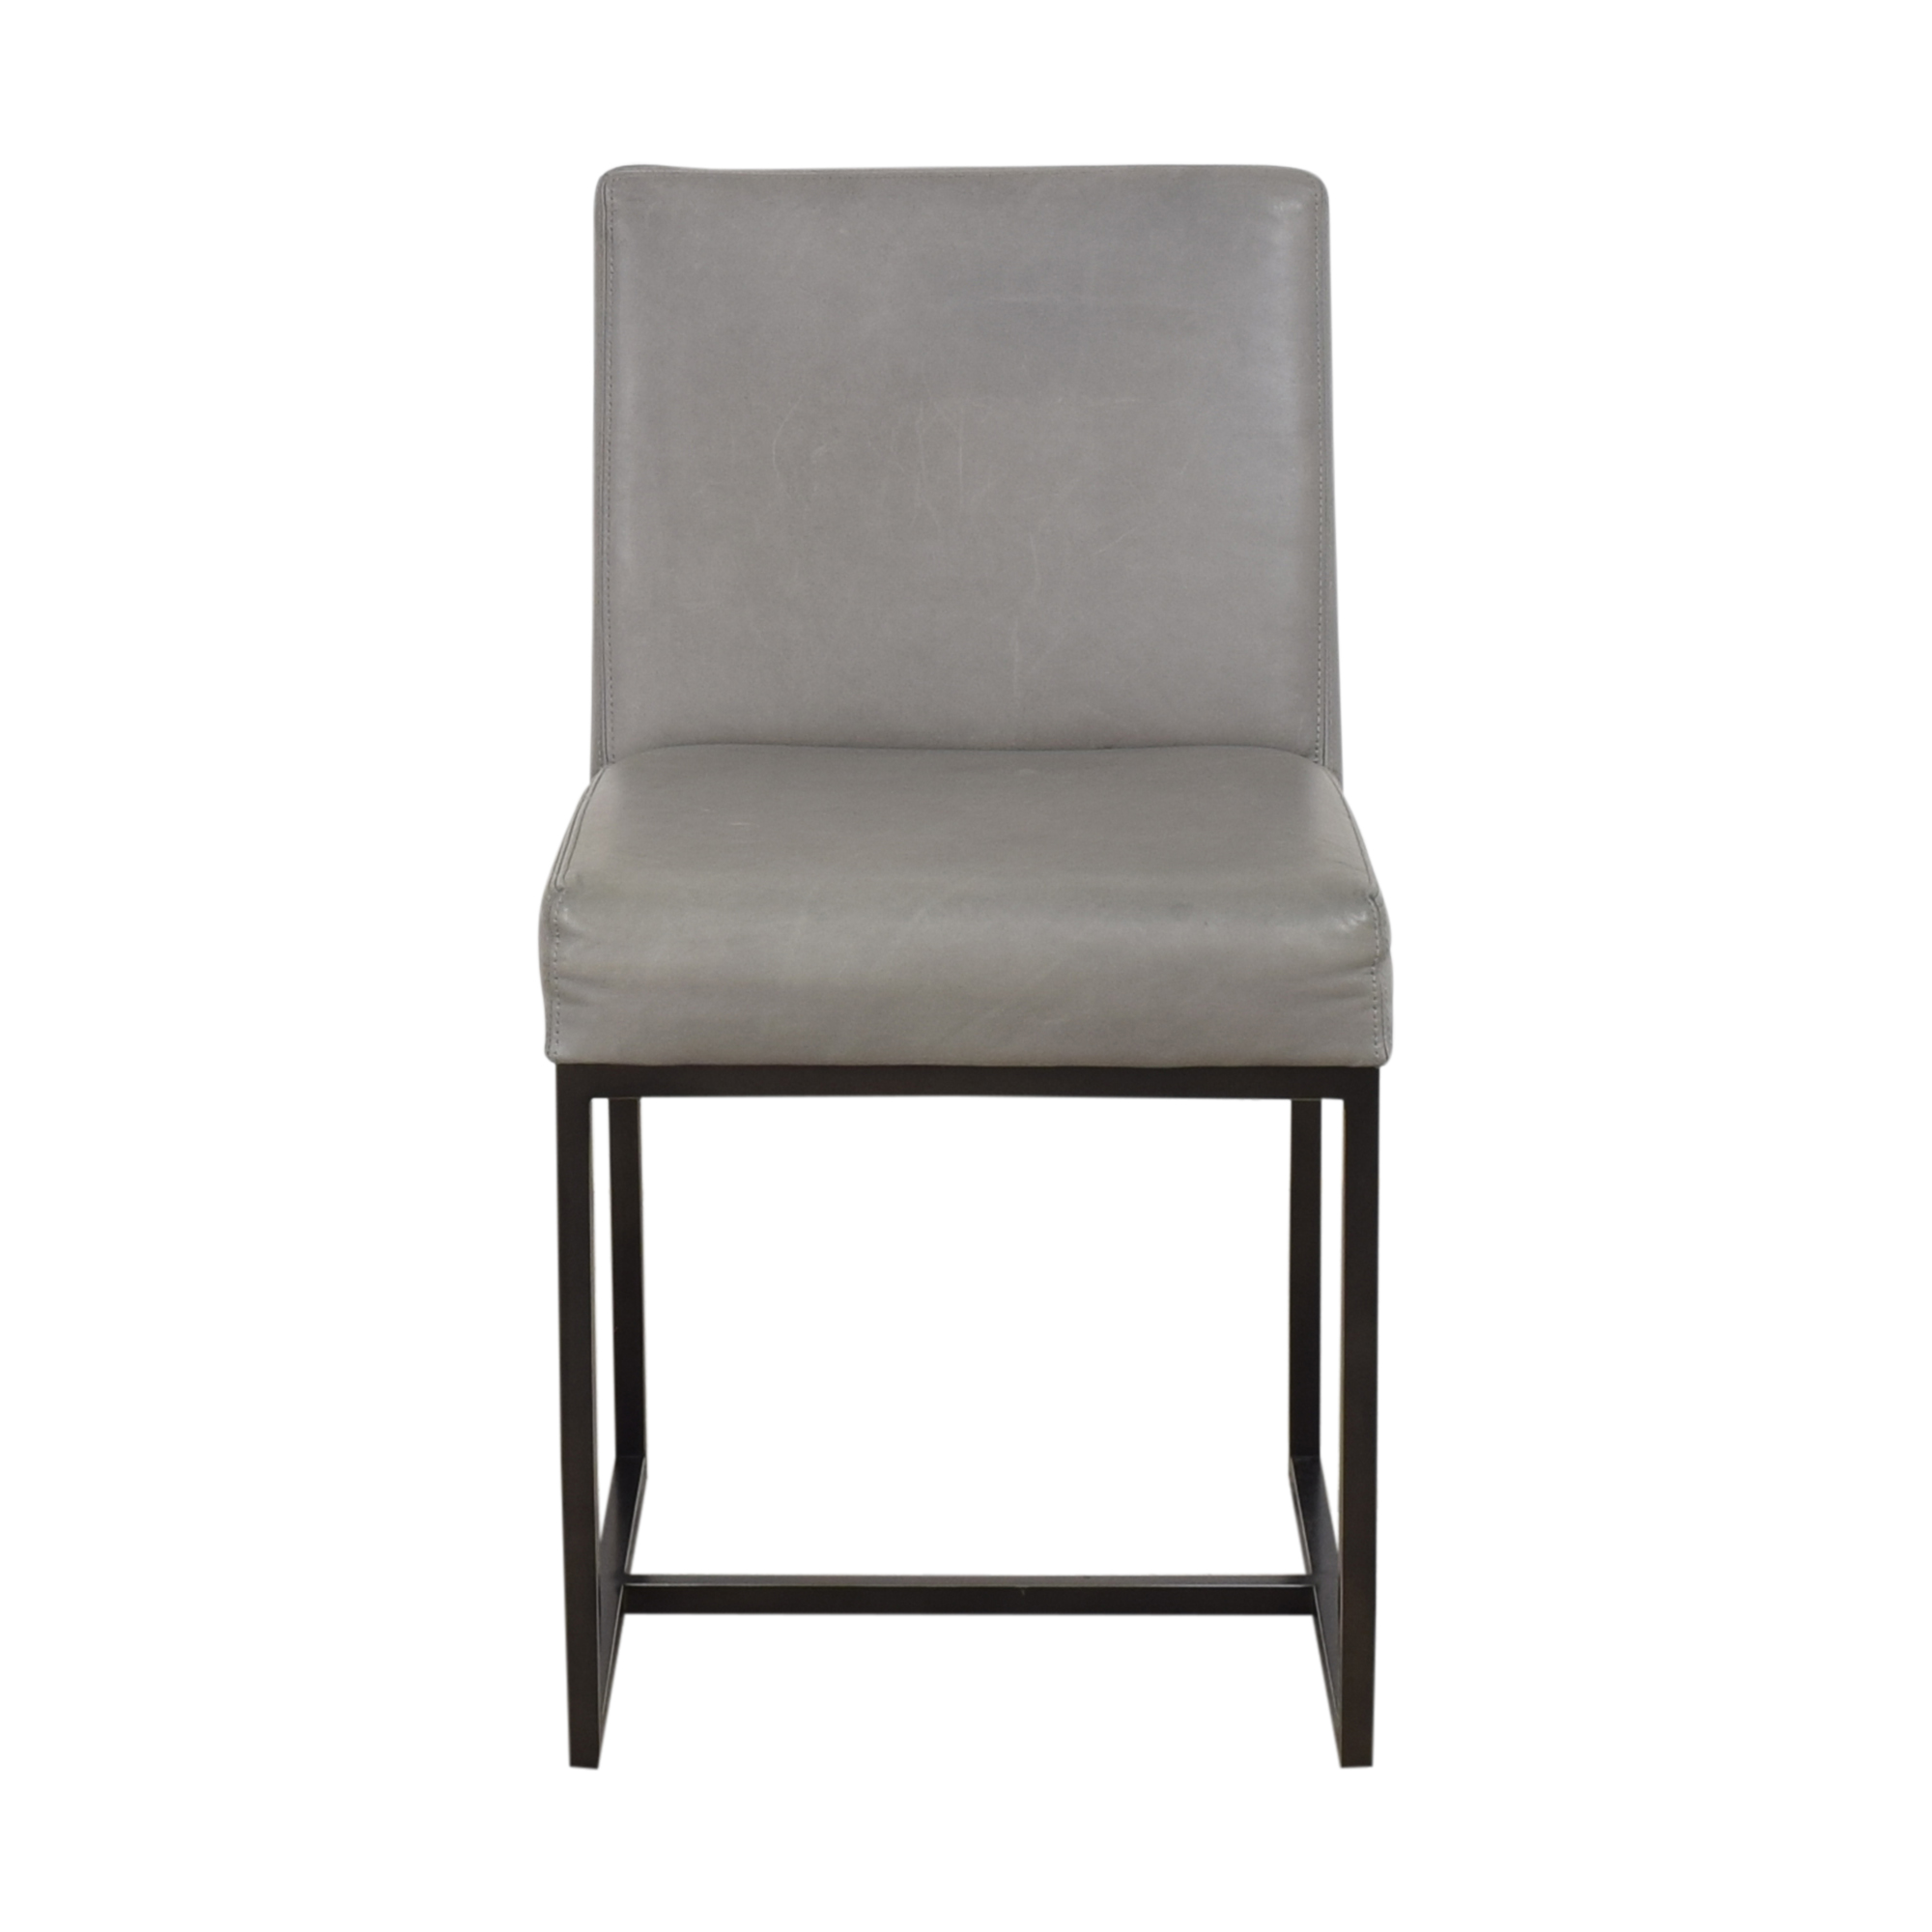 Restoration Hardware Restoration Hardware Emery Side Chair used